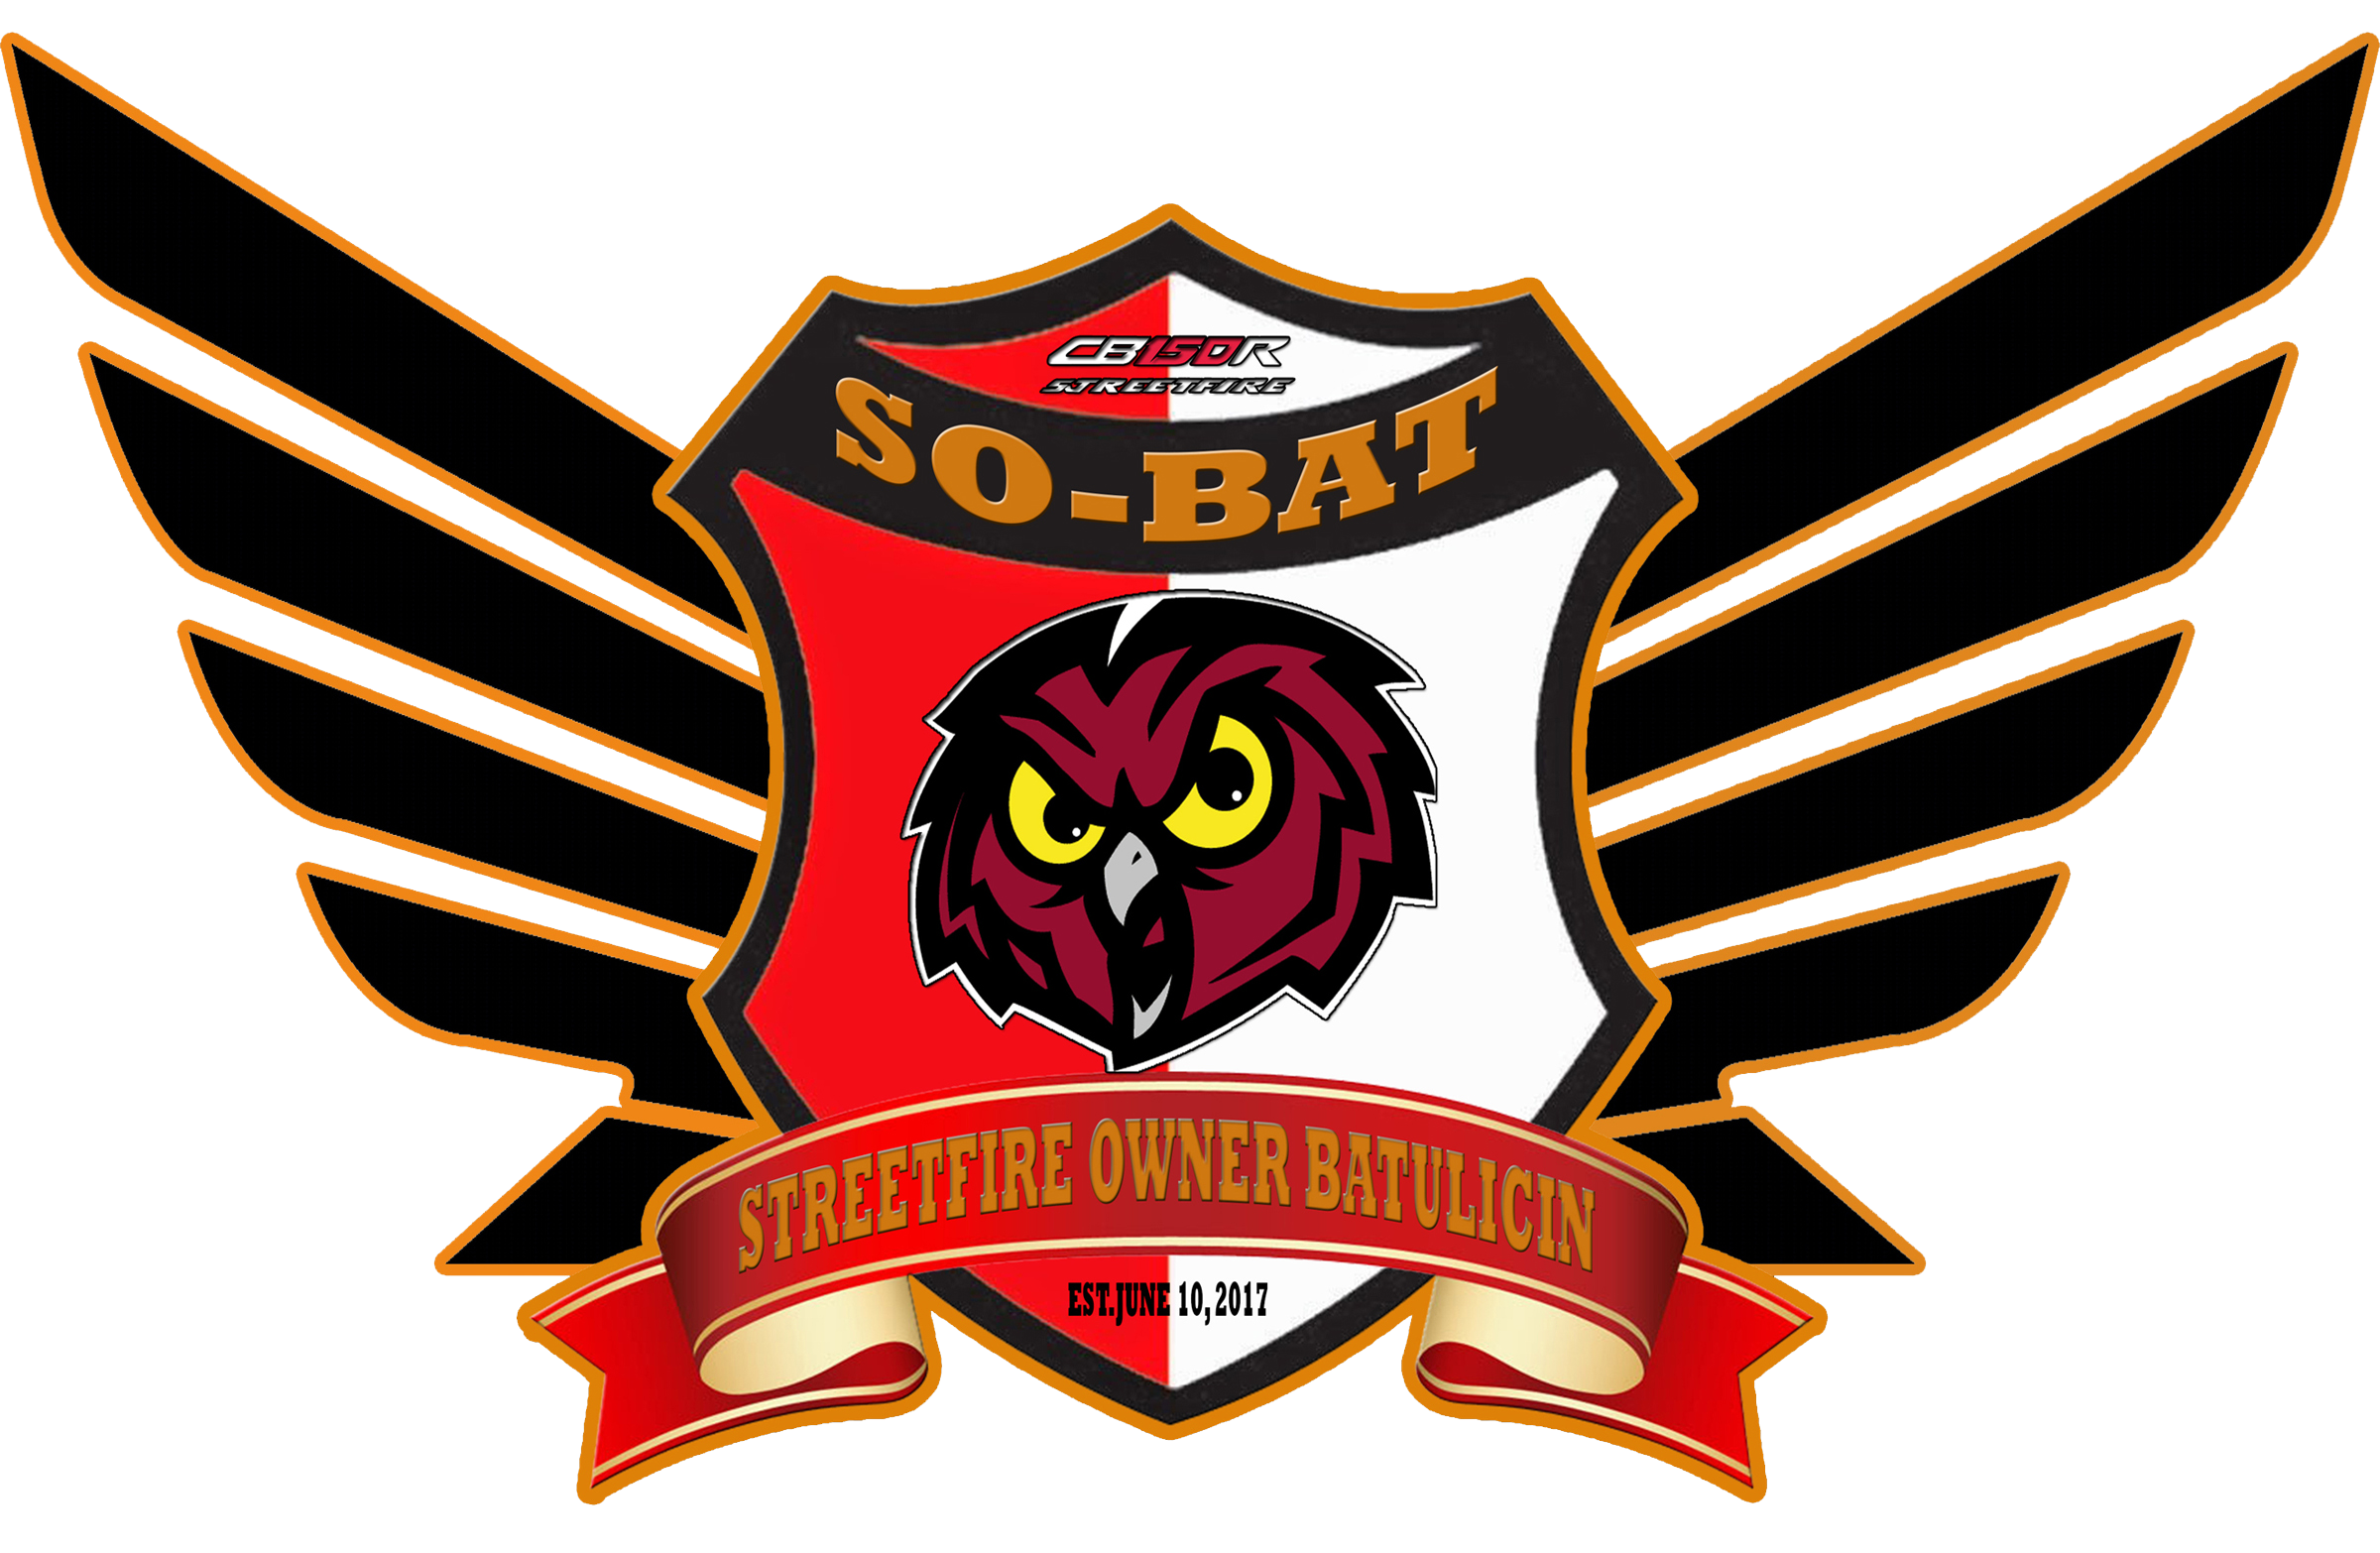 SO-BAT ( Streetfire Owner Batu Licin )